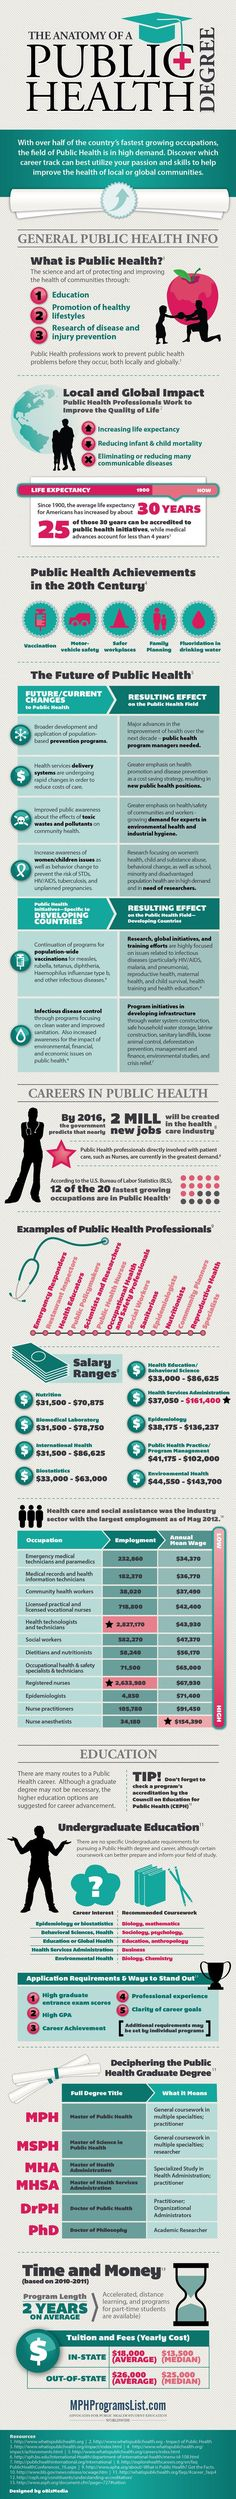 Public health degree. If only I could show this to people when they ask what I'm studying.: